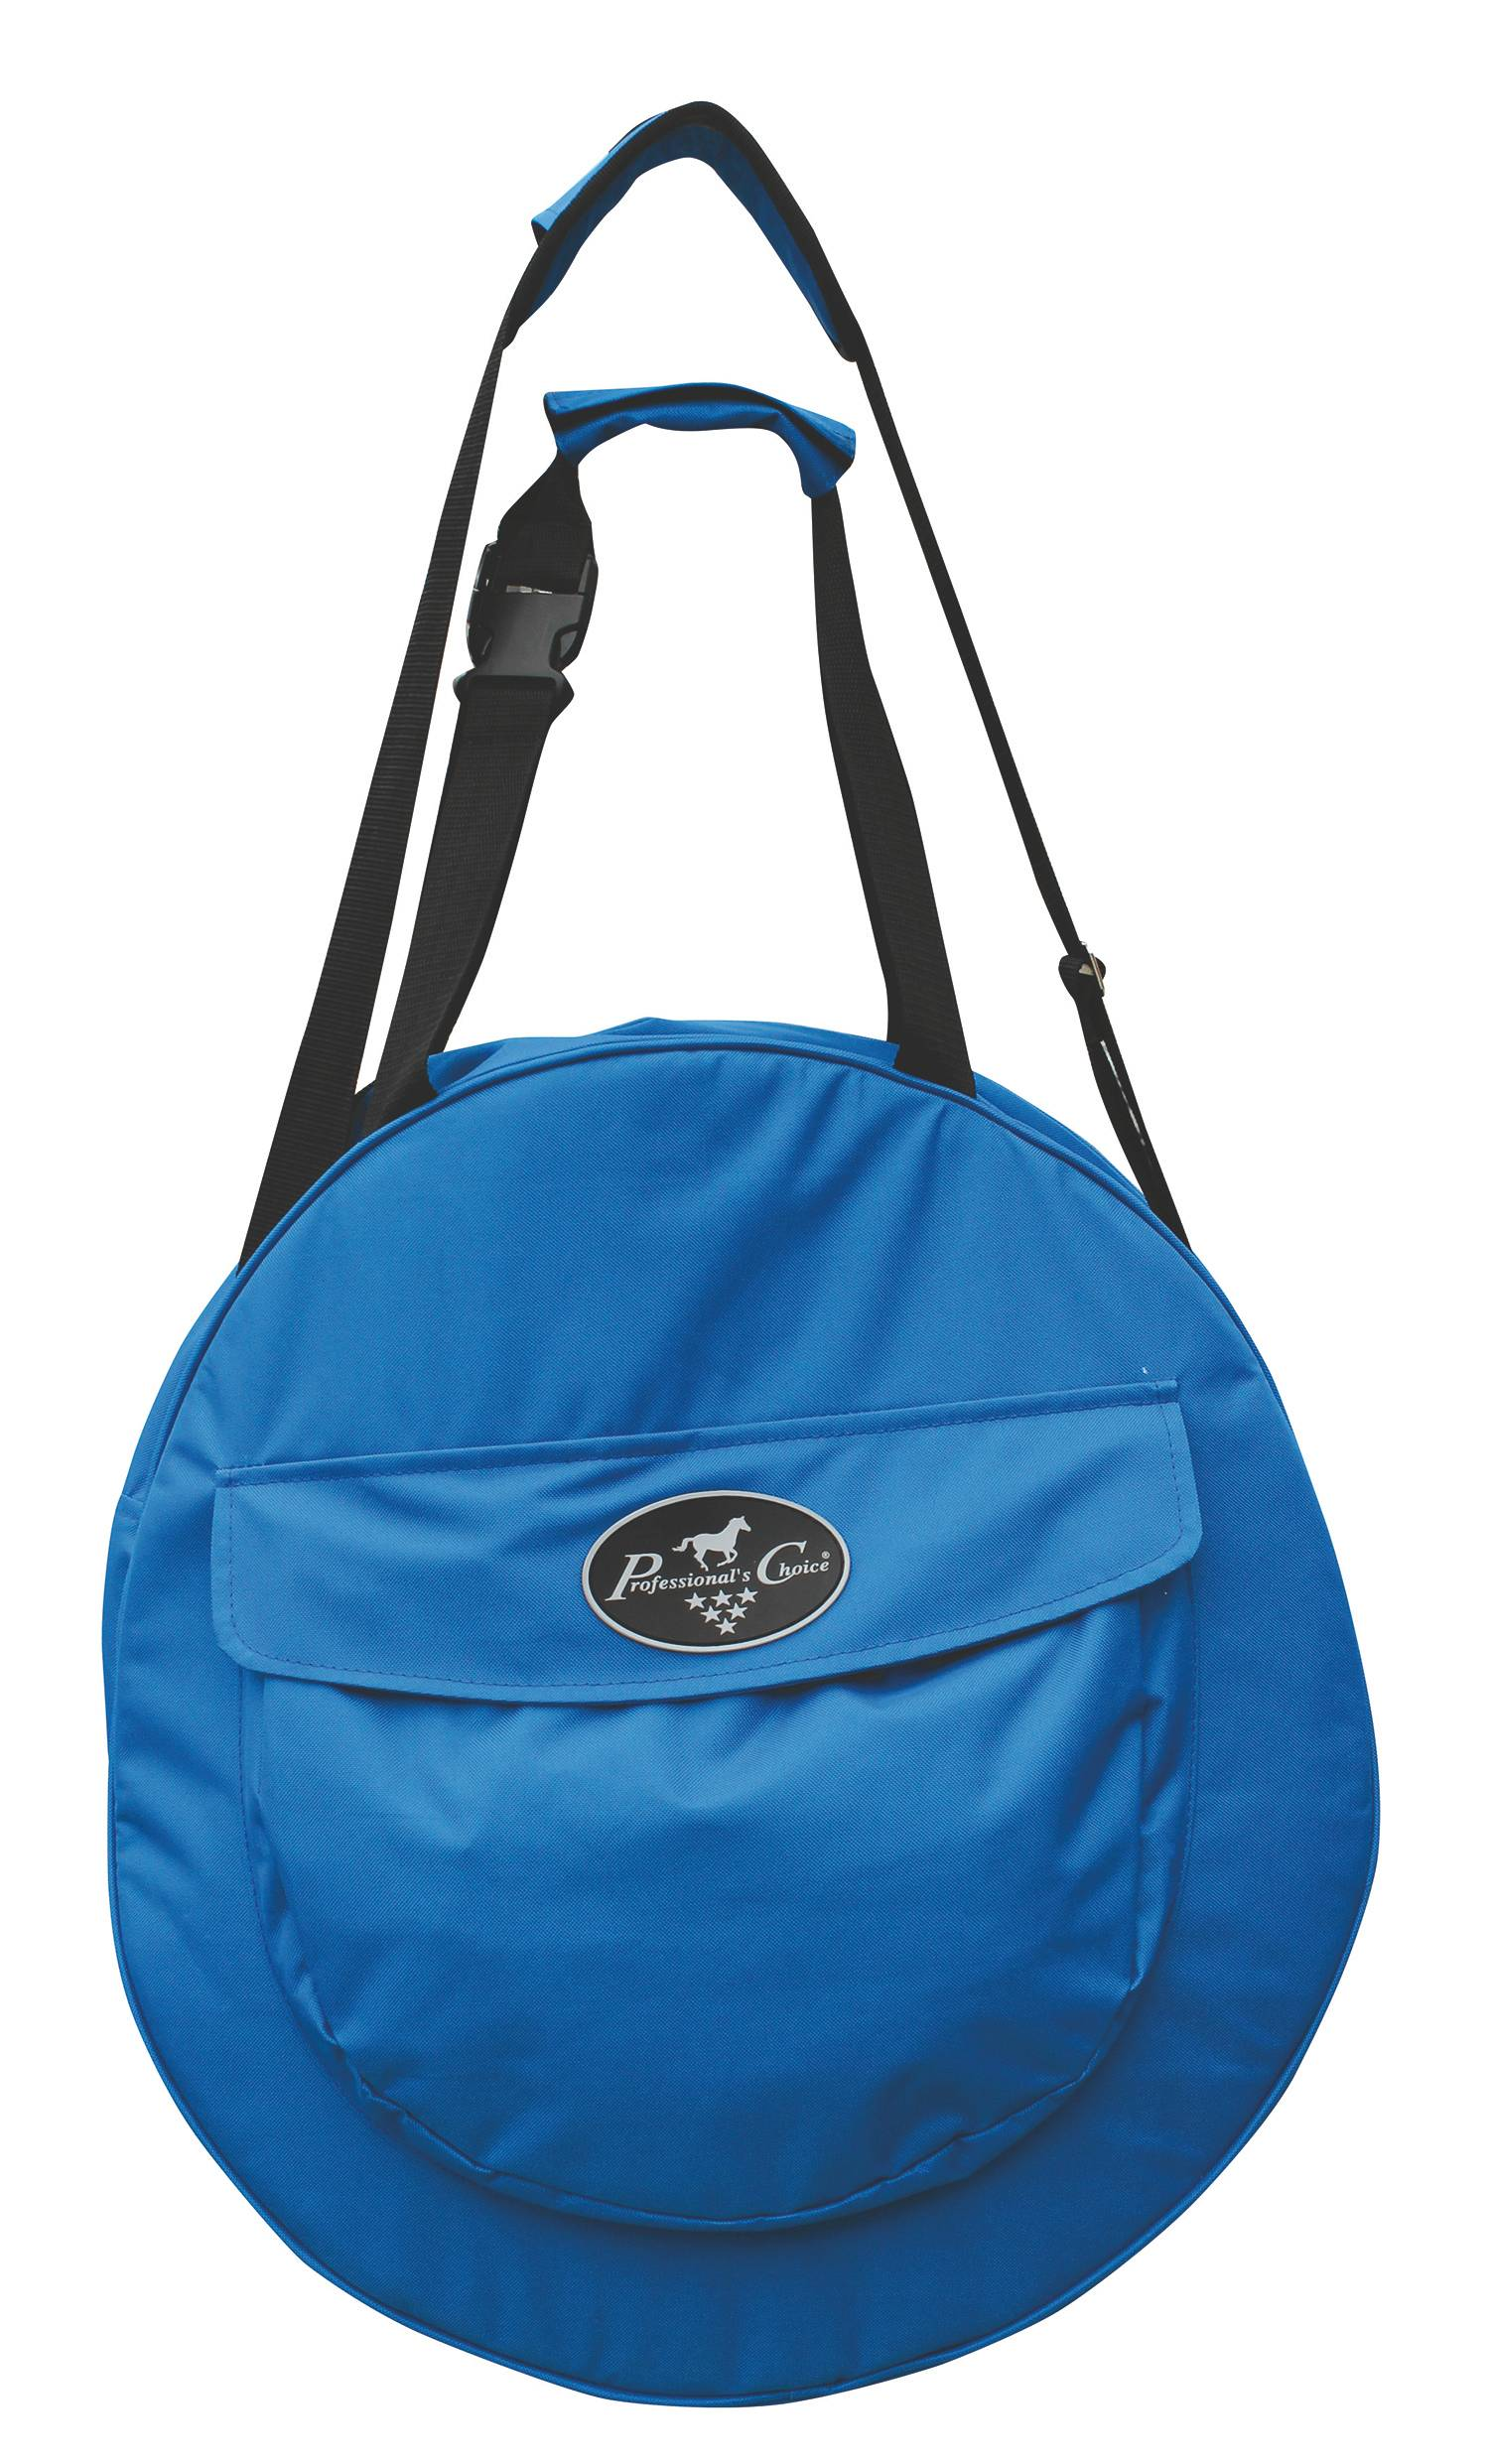 Prof Choice Rope Bag